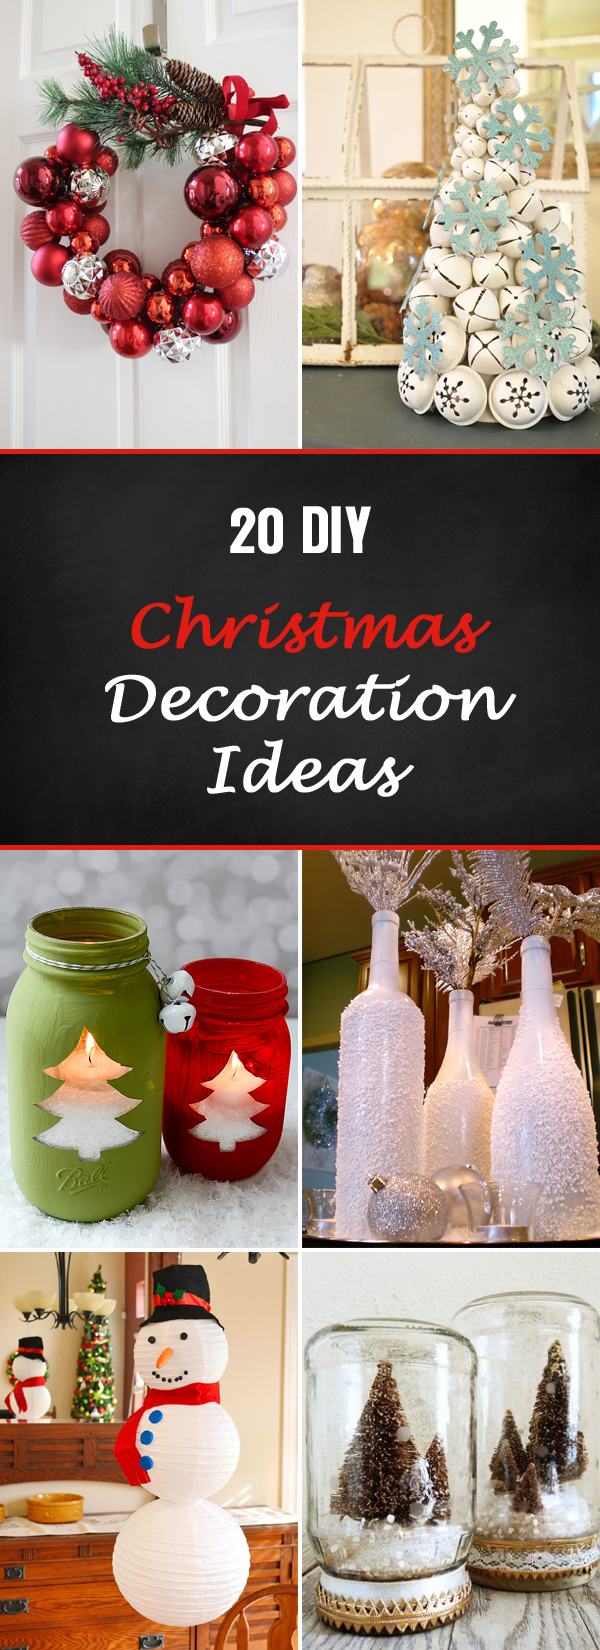 20 Totally Unique DIY Christmas Decoration Ideas